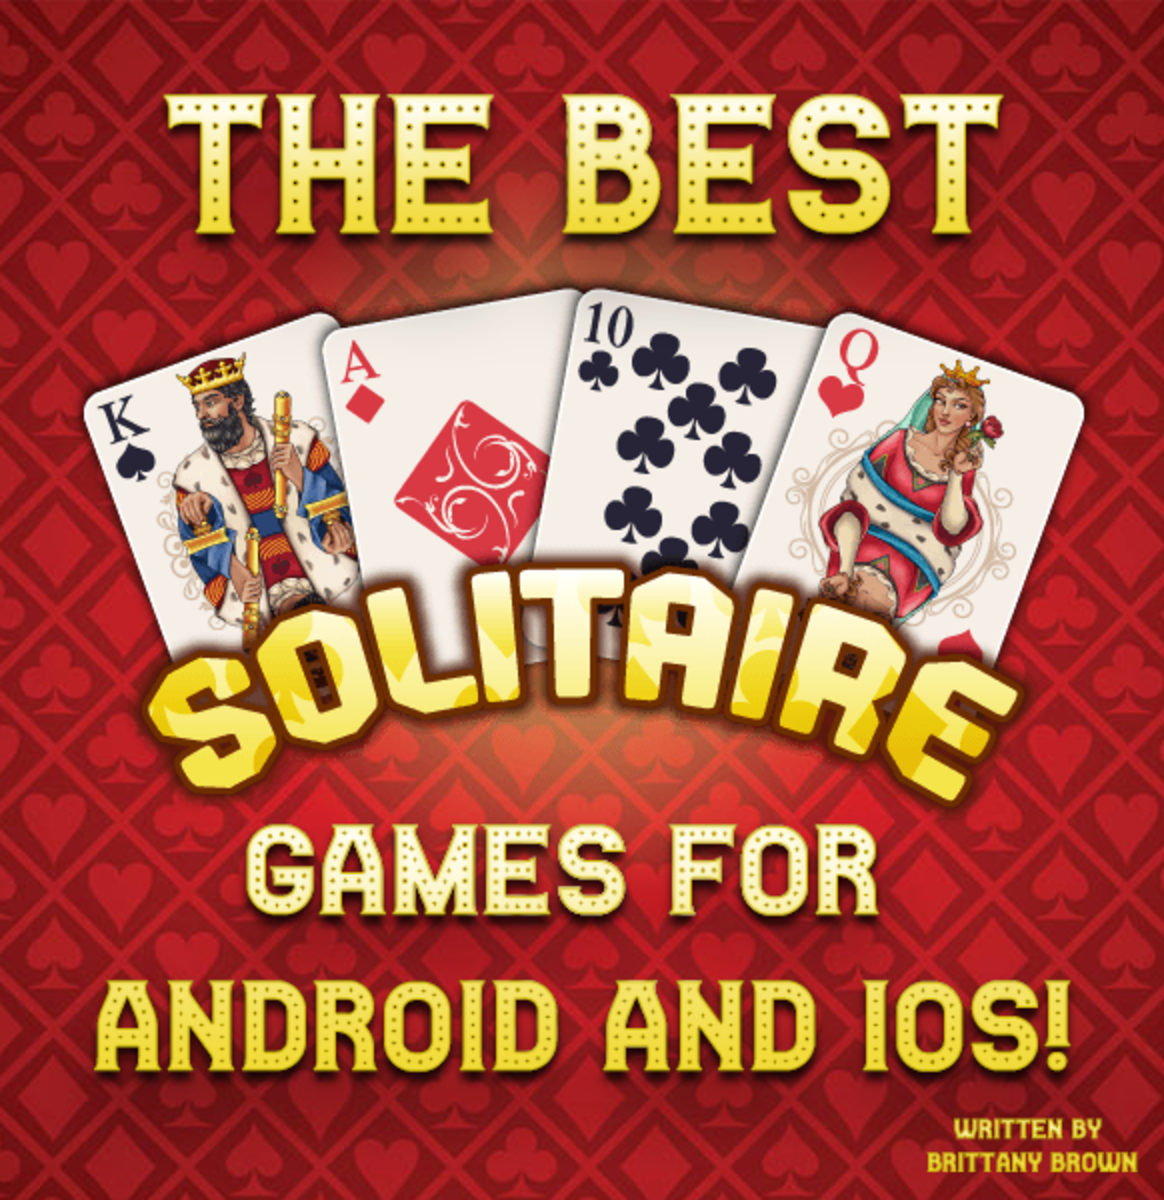 Discover some of the best free solitaire games for Android and iOS devices!